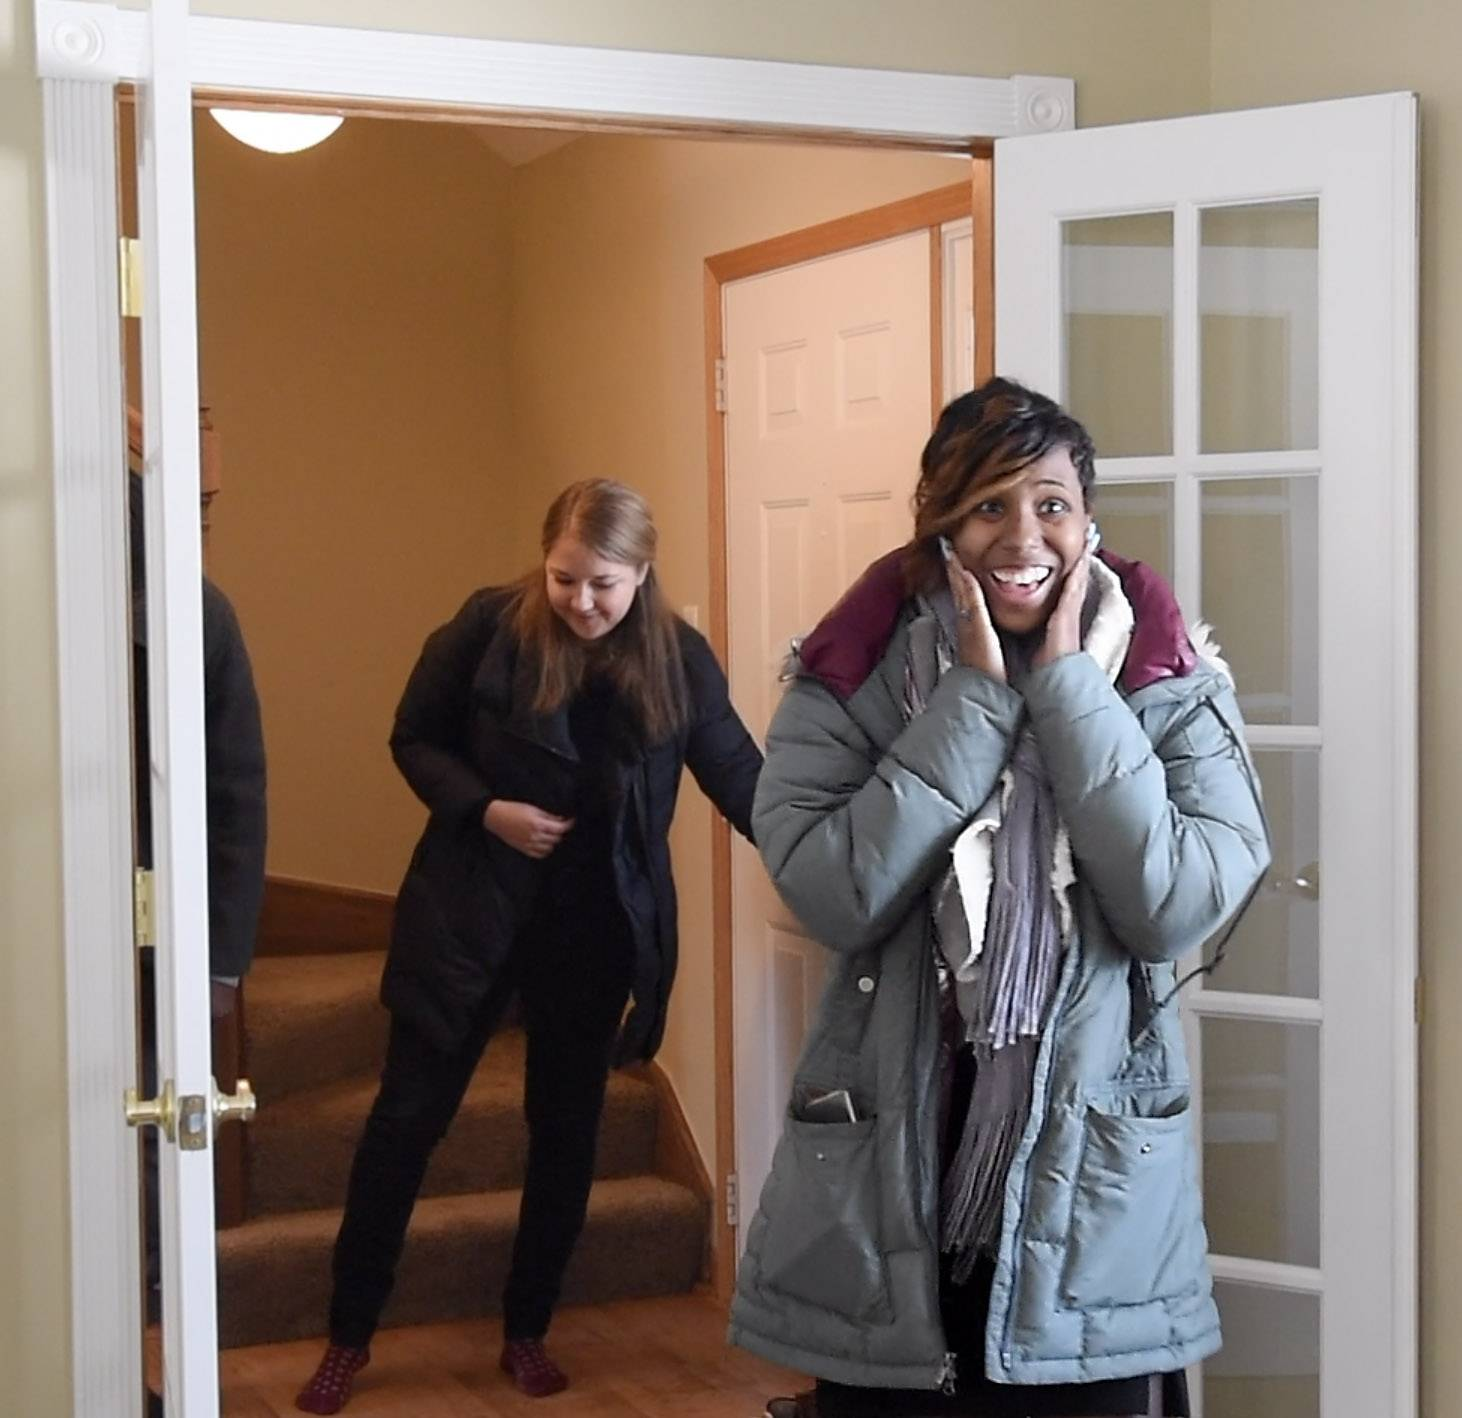 U.S. Navy veteran Shynae Murphy walks into her newly renovated, mortgage-free home in Algonquin for the first time Tuesday. She was awarded the house through a program offered by Operation Homefront and JPMorgan Chase.